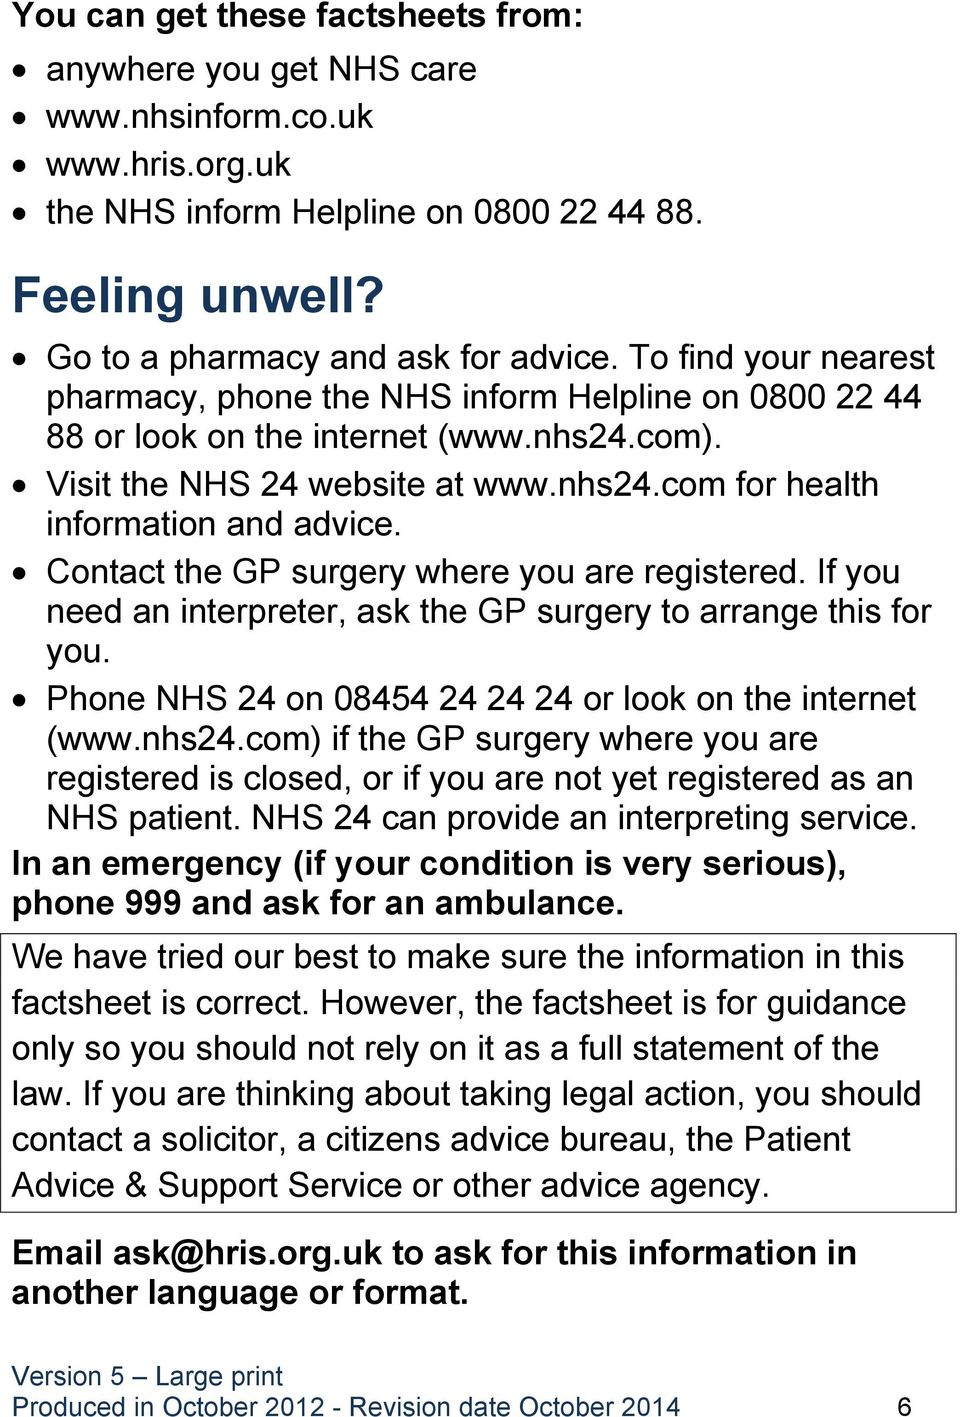 Contact the GP surgery where you are registered. If you need an interpreter, ask the GP surgery to arrange this for you. Phone NHS 24 on 08454 24 24 24 or look on the internet (www.nhs24.